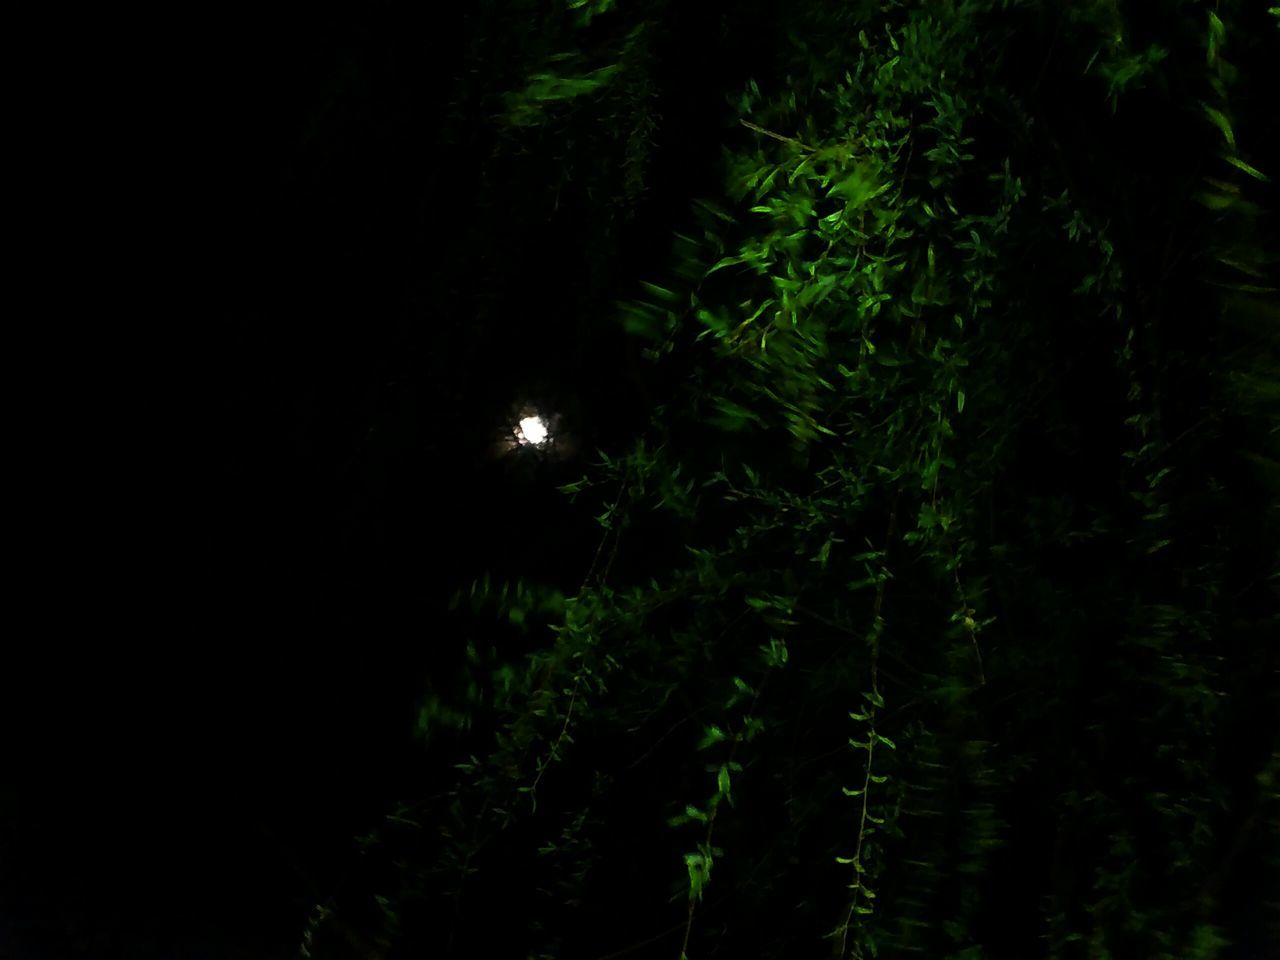 night, growth, nature, moon, beauty in nature, no people, forest, plant, tranquility, scenics, outdoors, tree